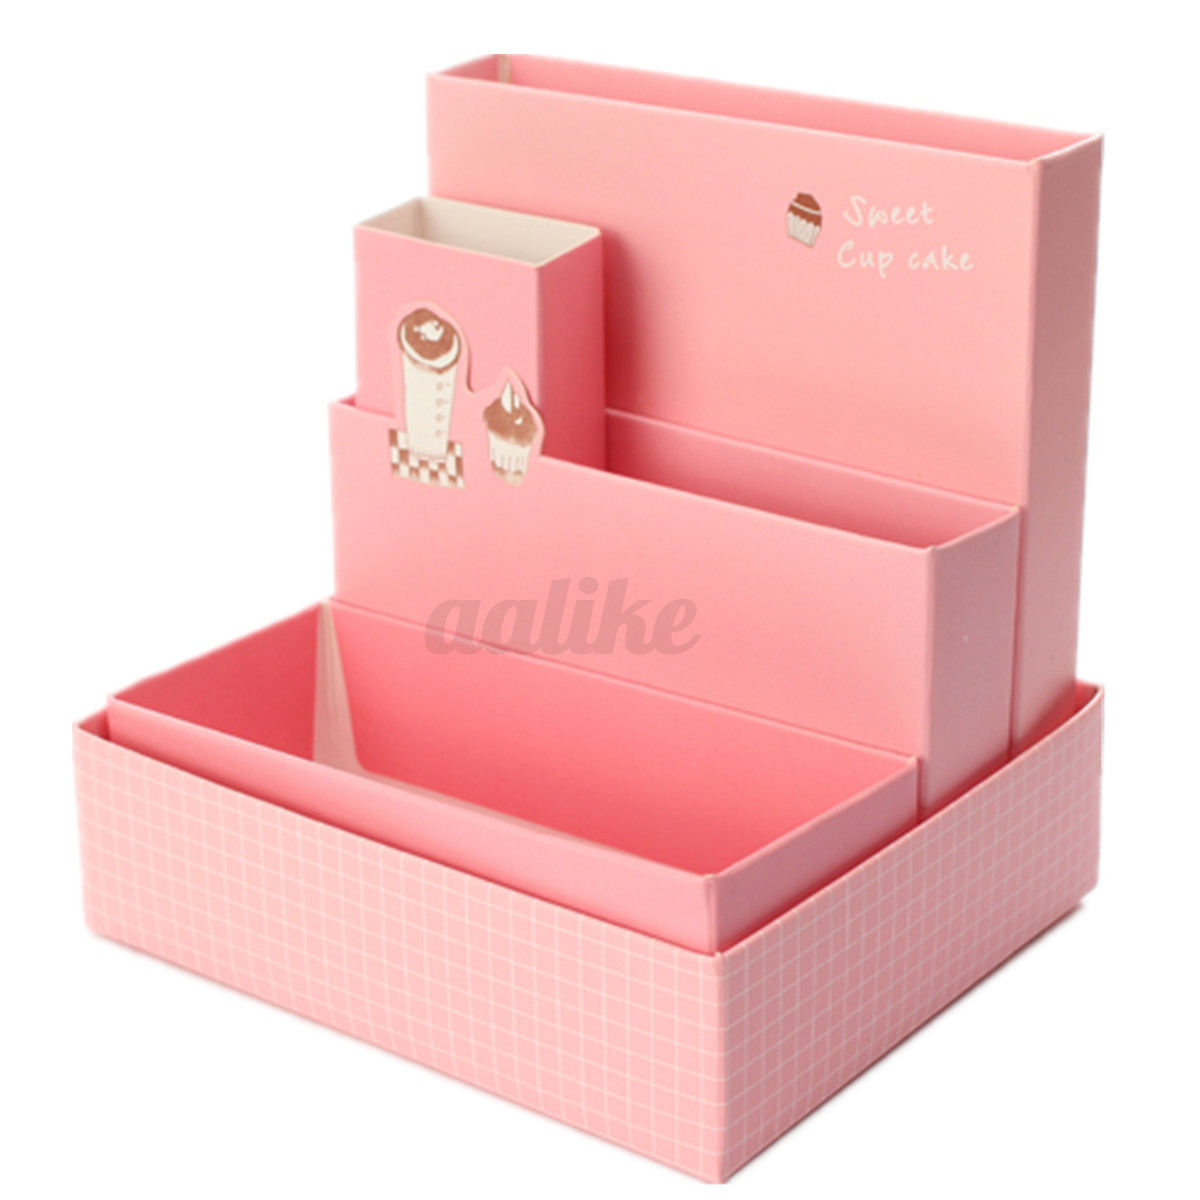 Diy paper board storage box stationery makeup cosmetic organizer desk decor easy ebay - Desk stationery organiser ...